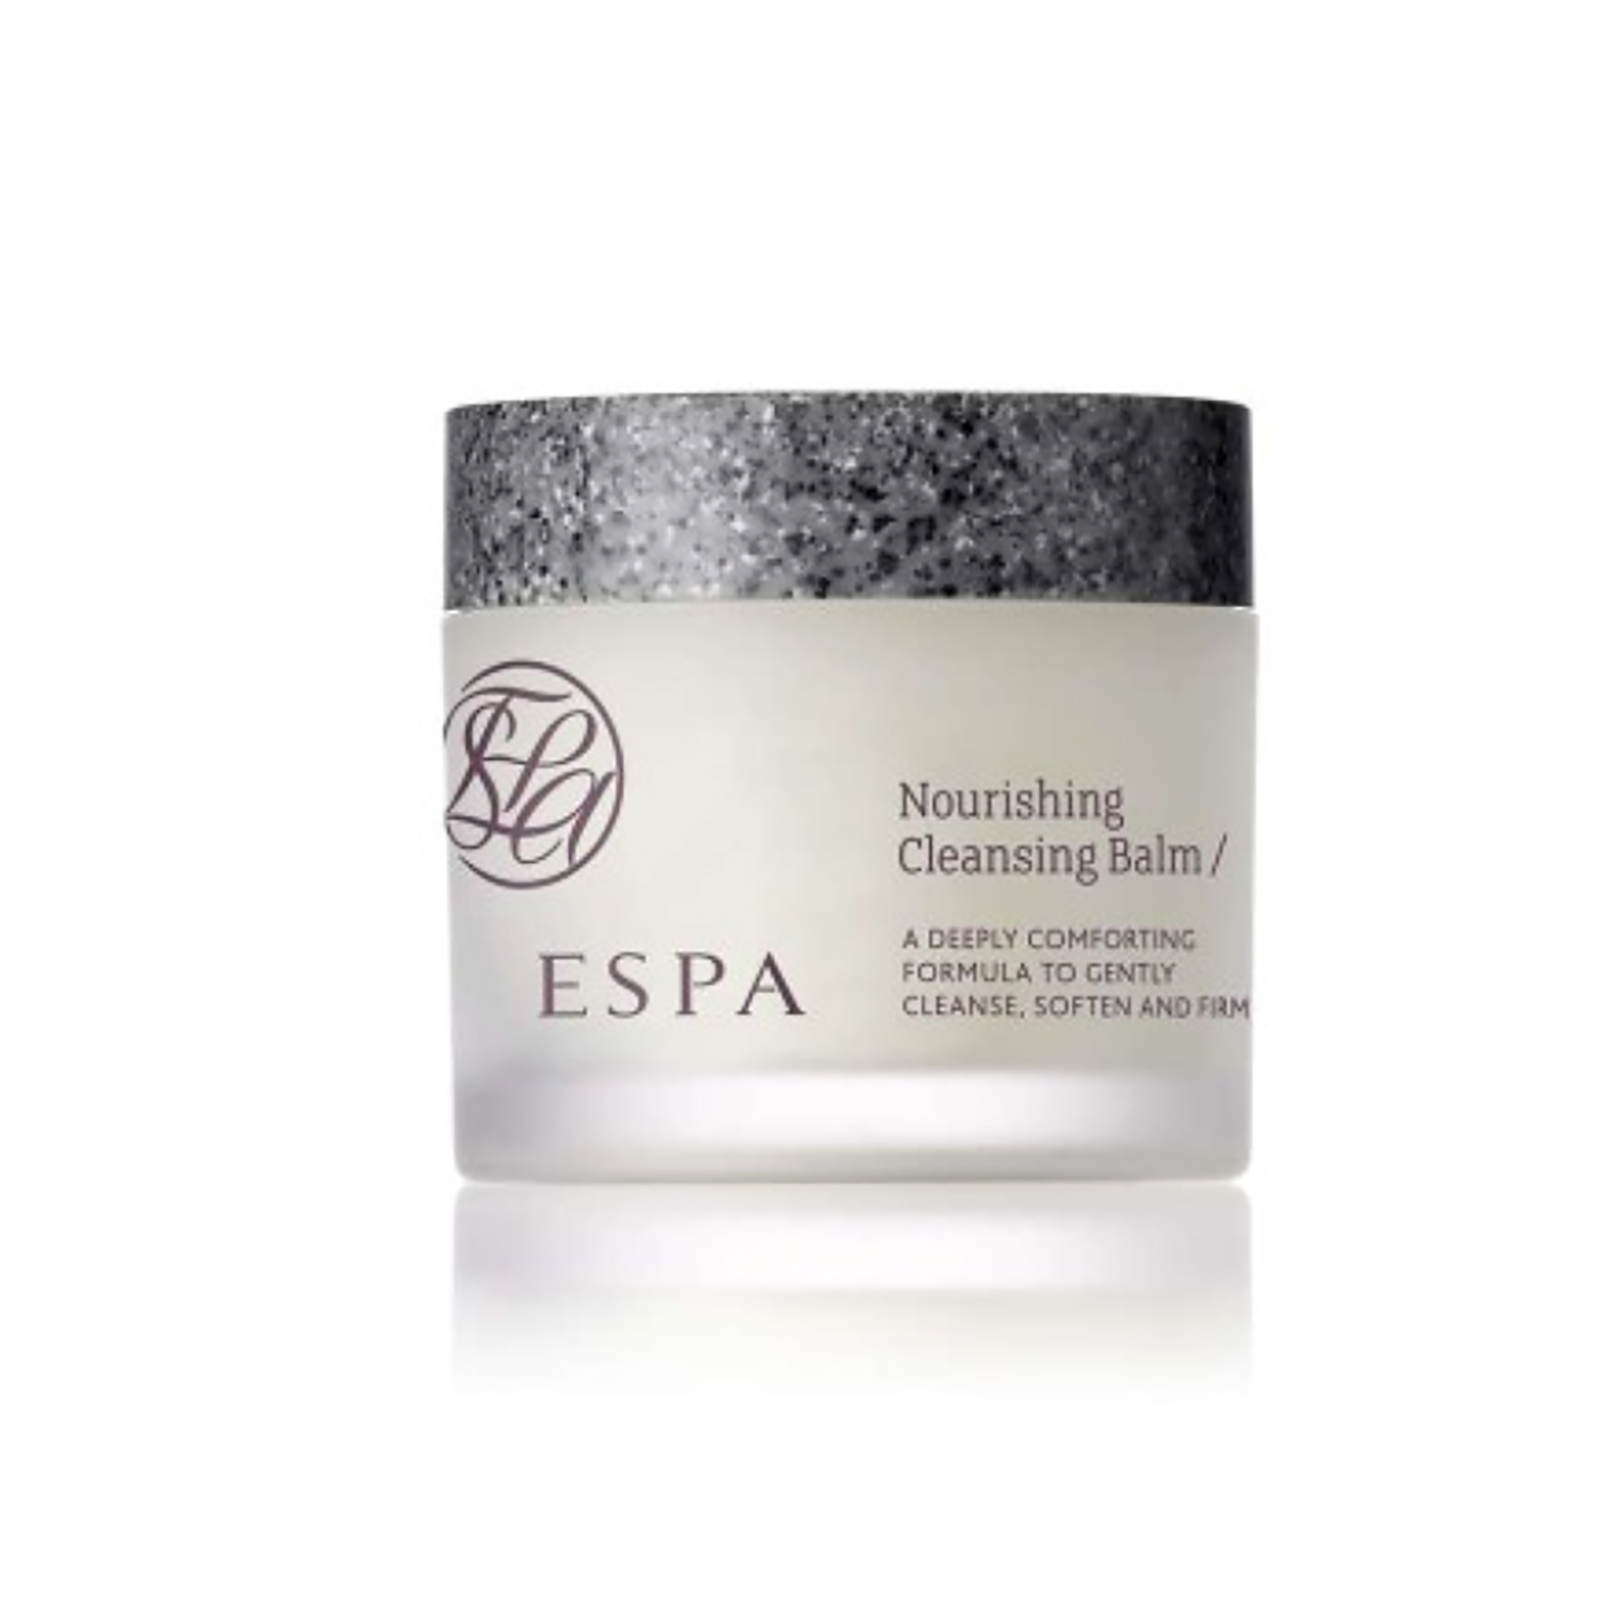 ESPA Nourishing Cleansing Balm (50g)